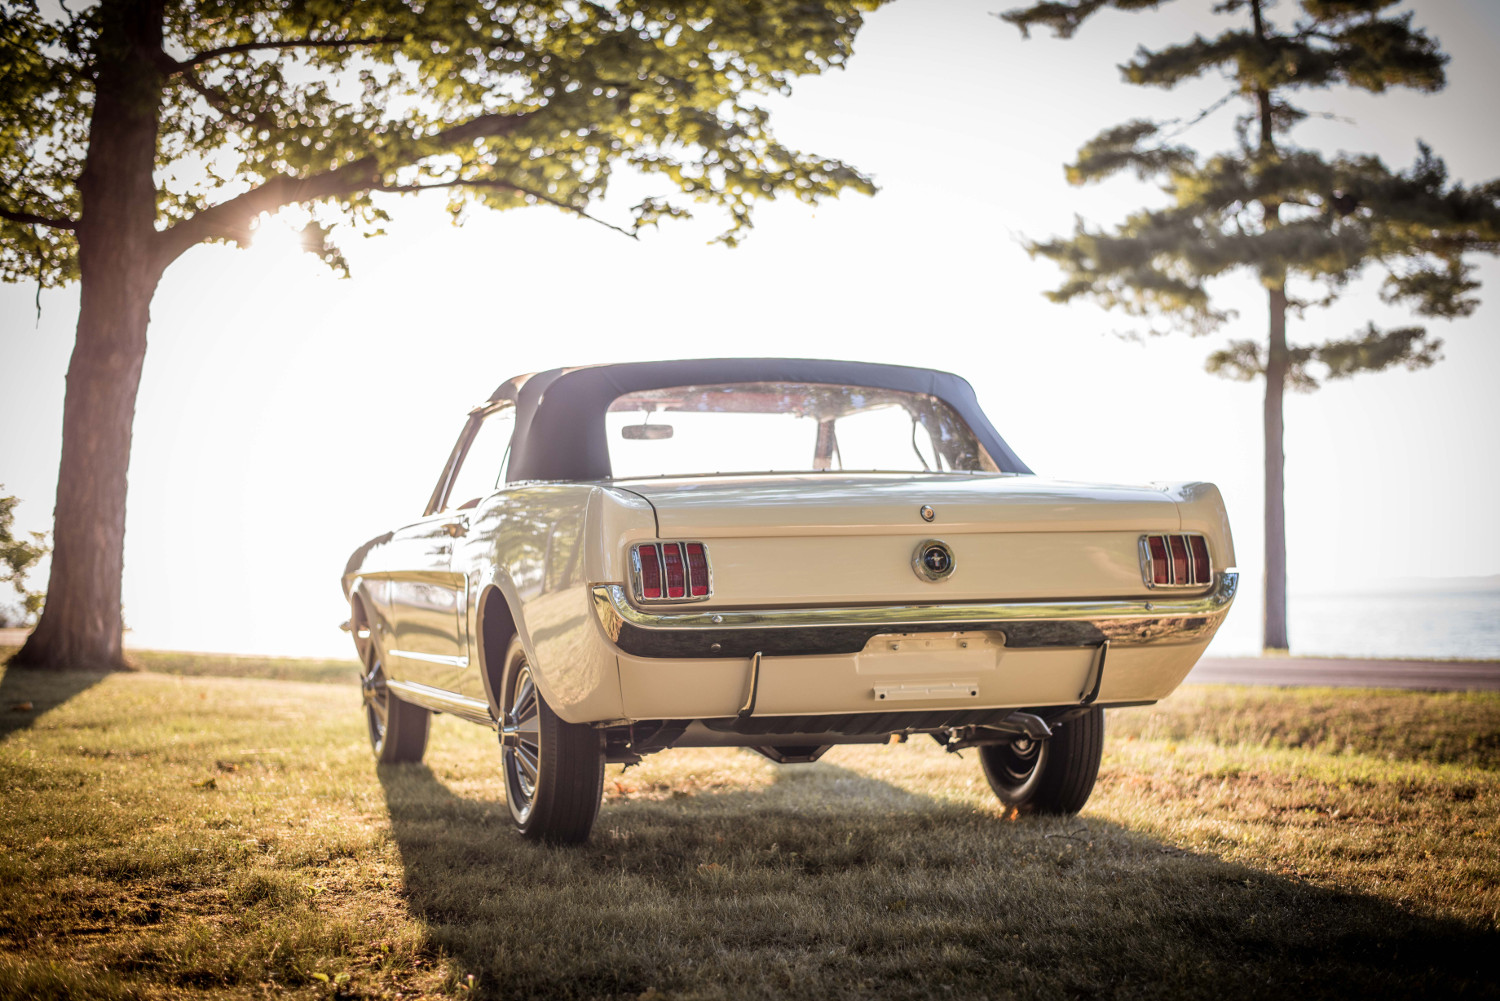 1965 Ford Mustang rear 3/4